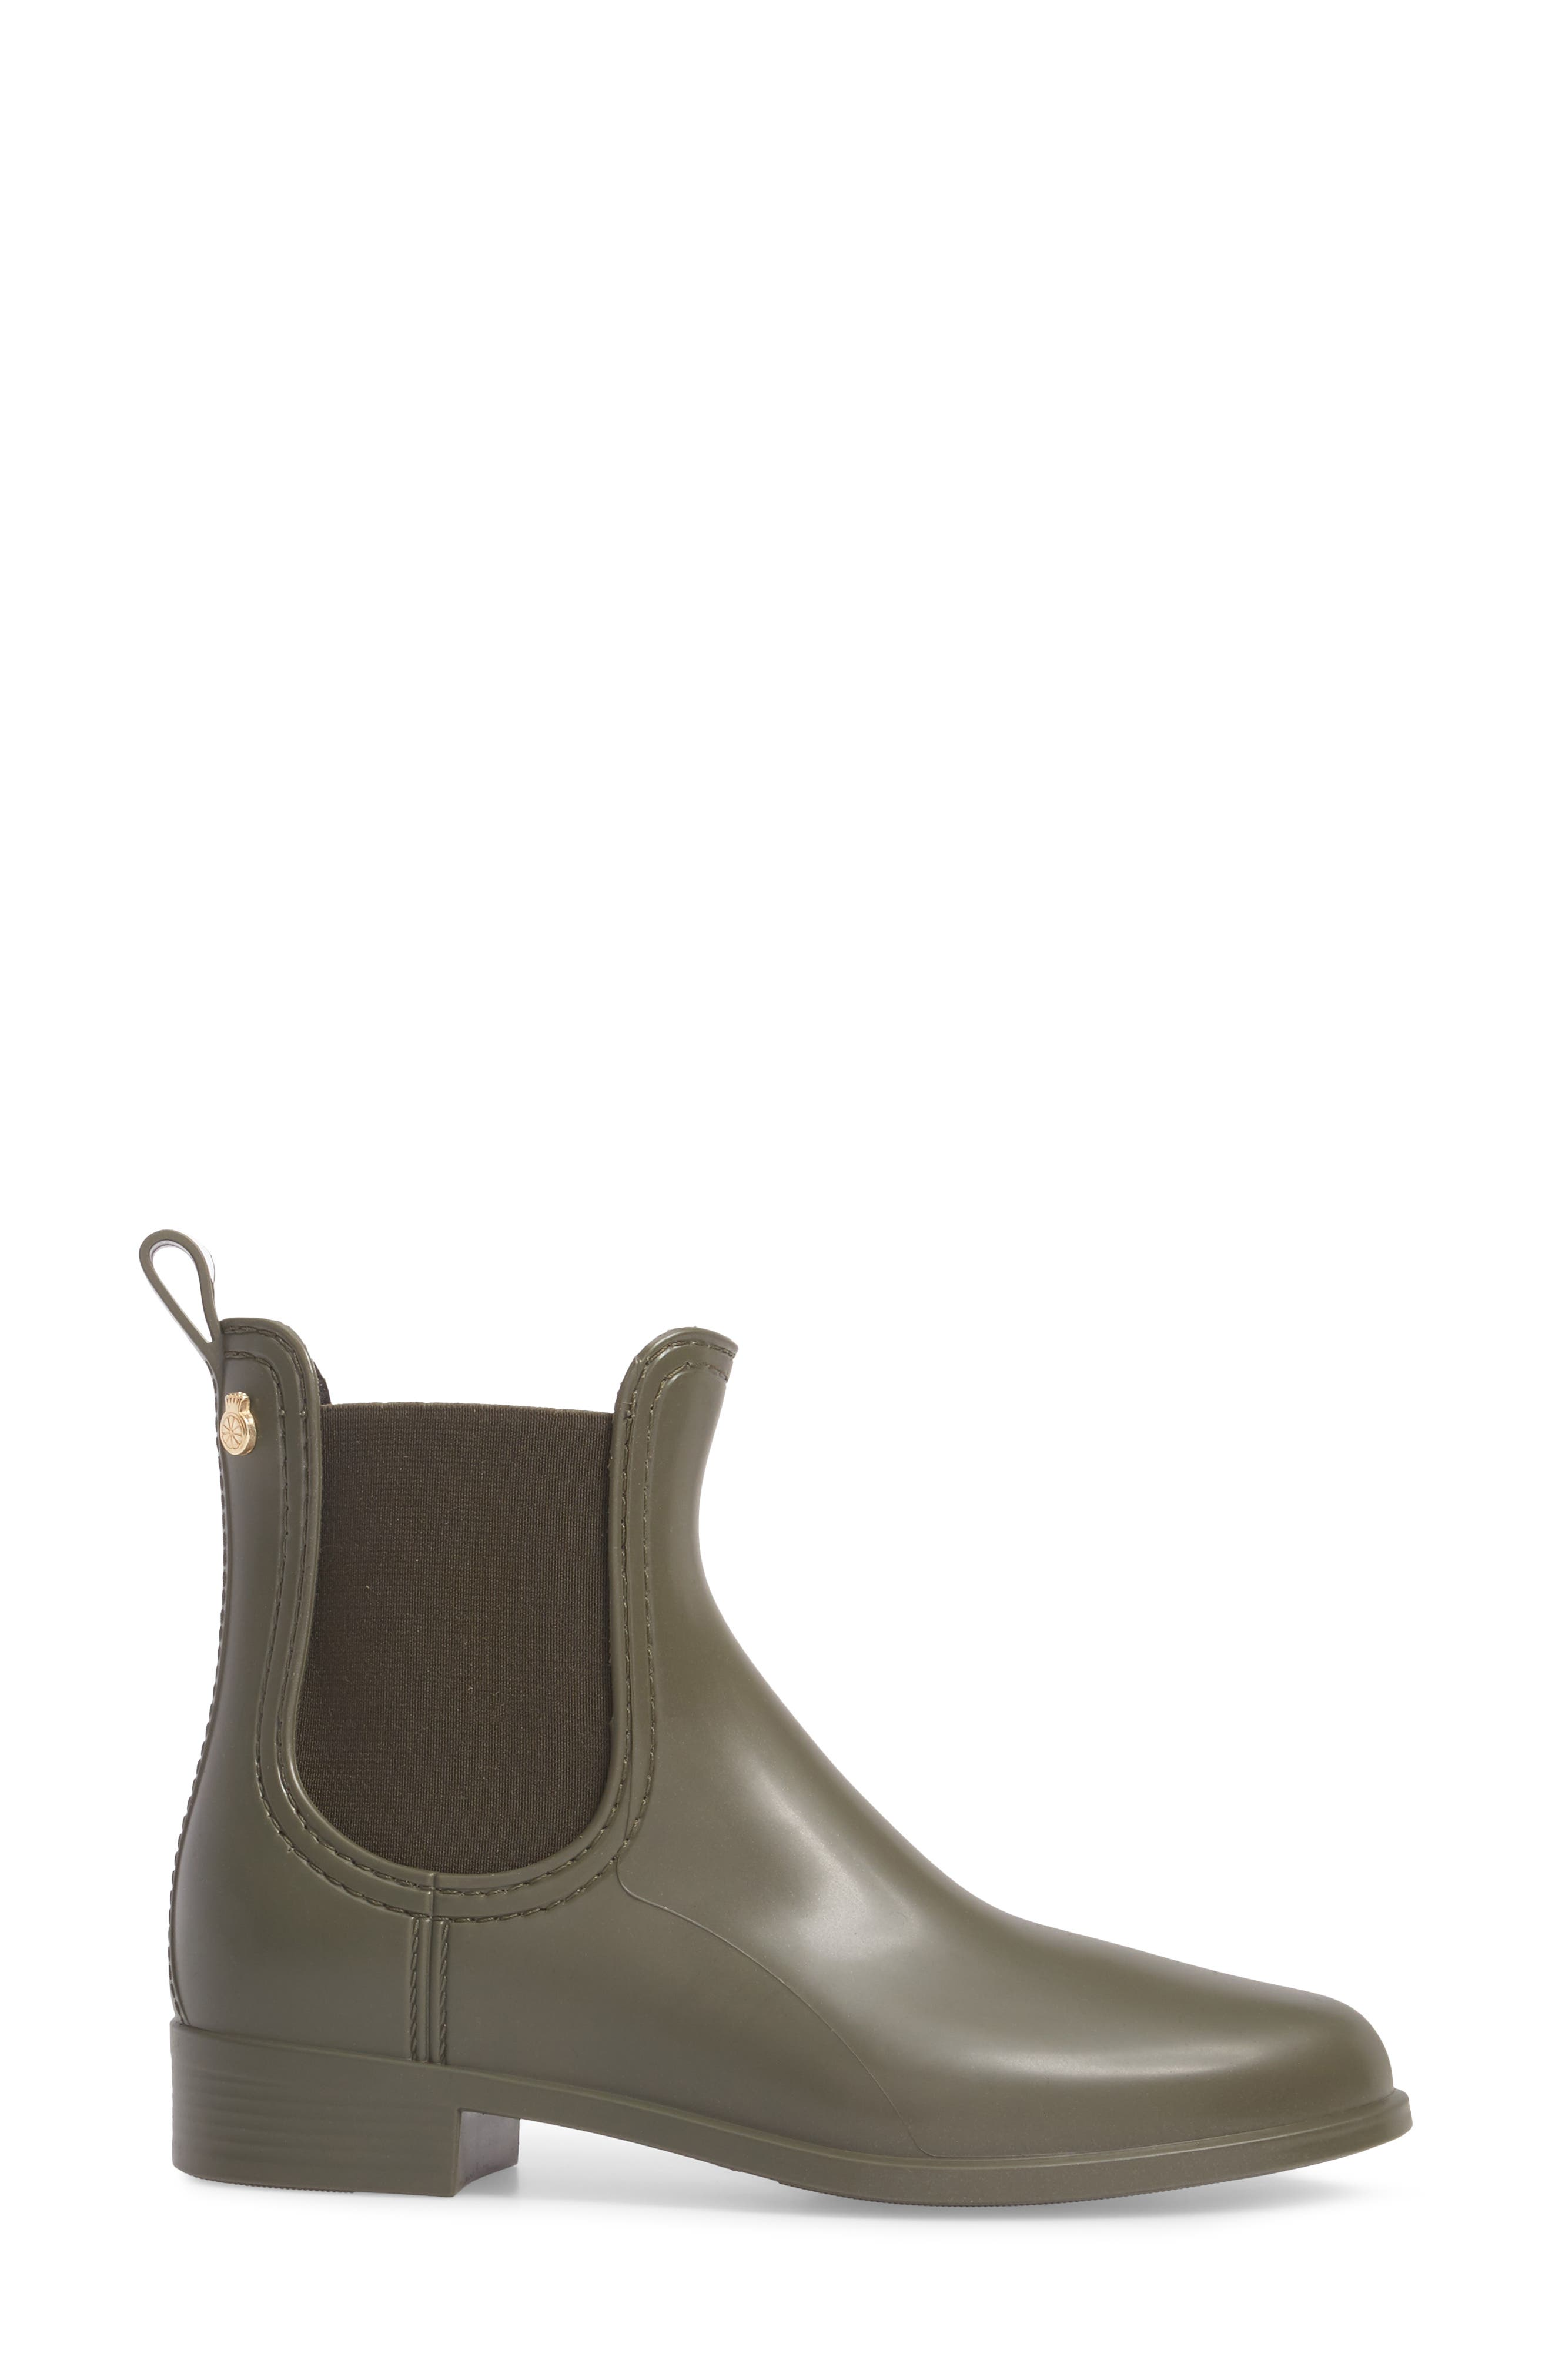 Splash Waterproof Chelsea Boot,                             Alternate thumbnail 3, color,                             Metal Green Matte